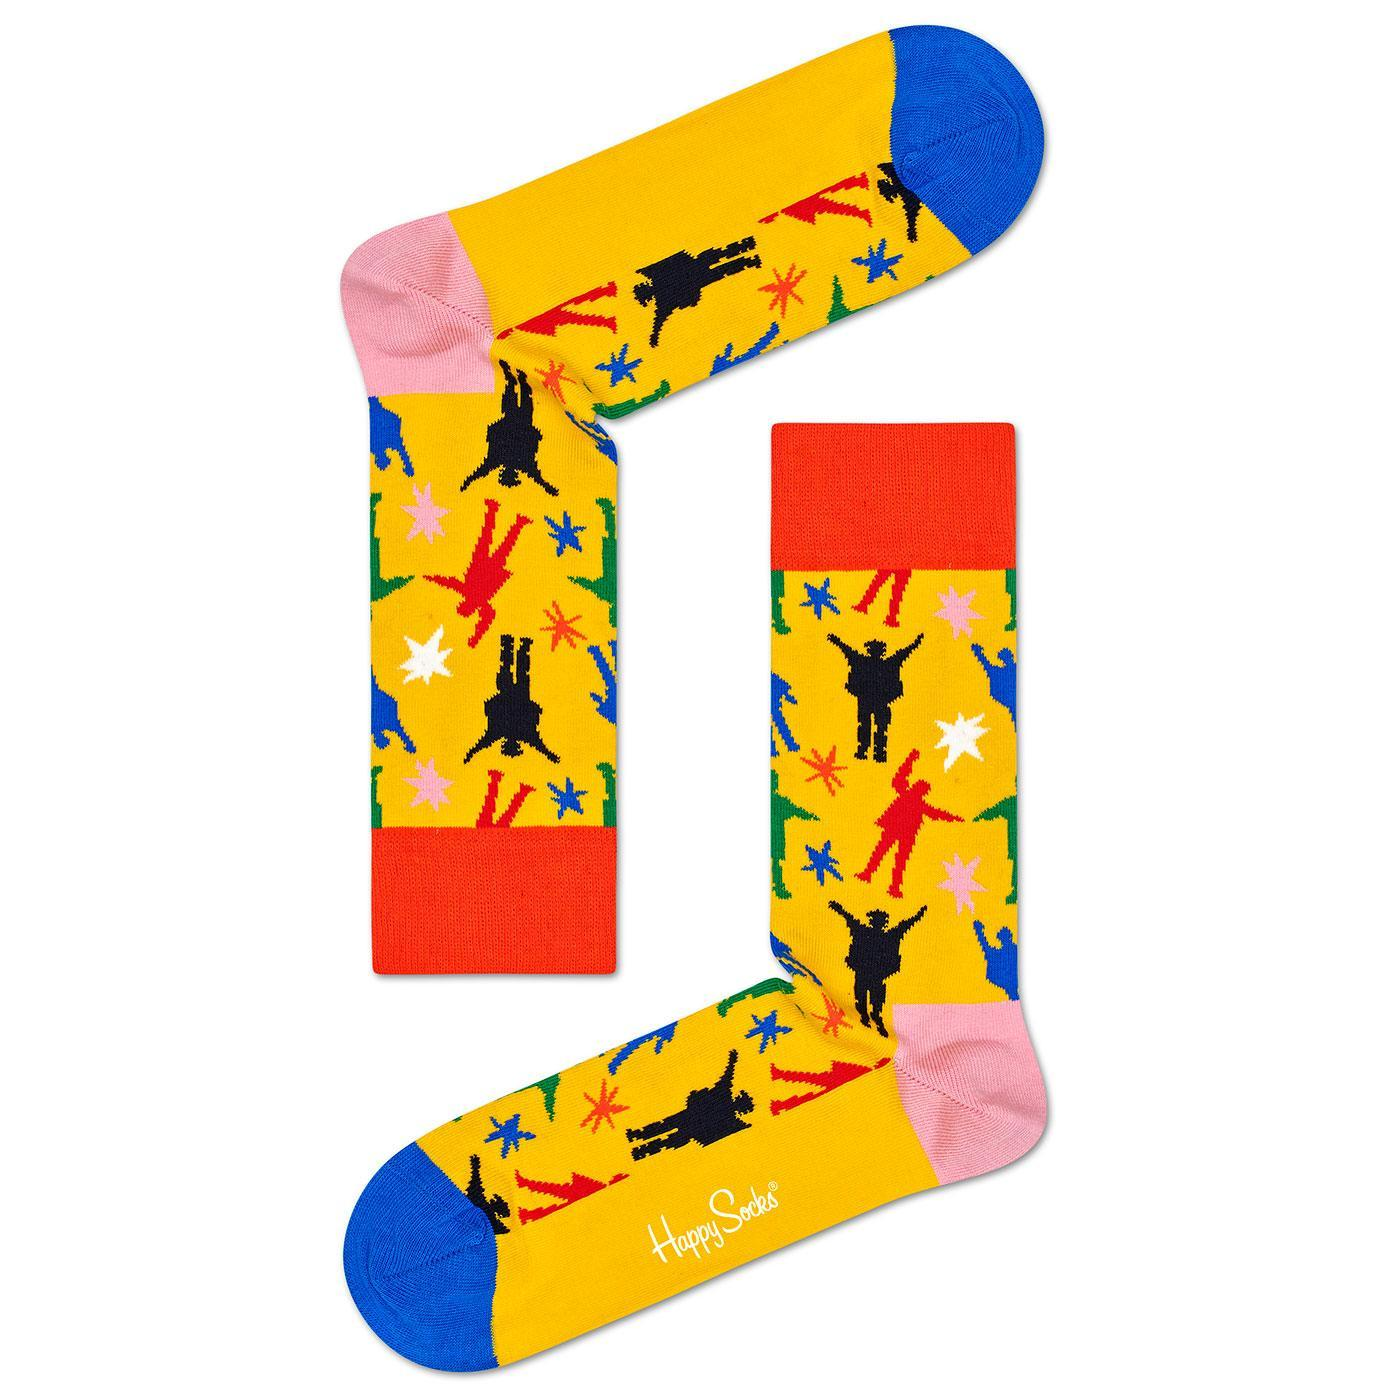 + HAPPY SOCKS x THE BEATLES Helping Hands Socks